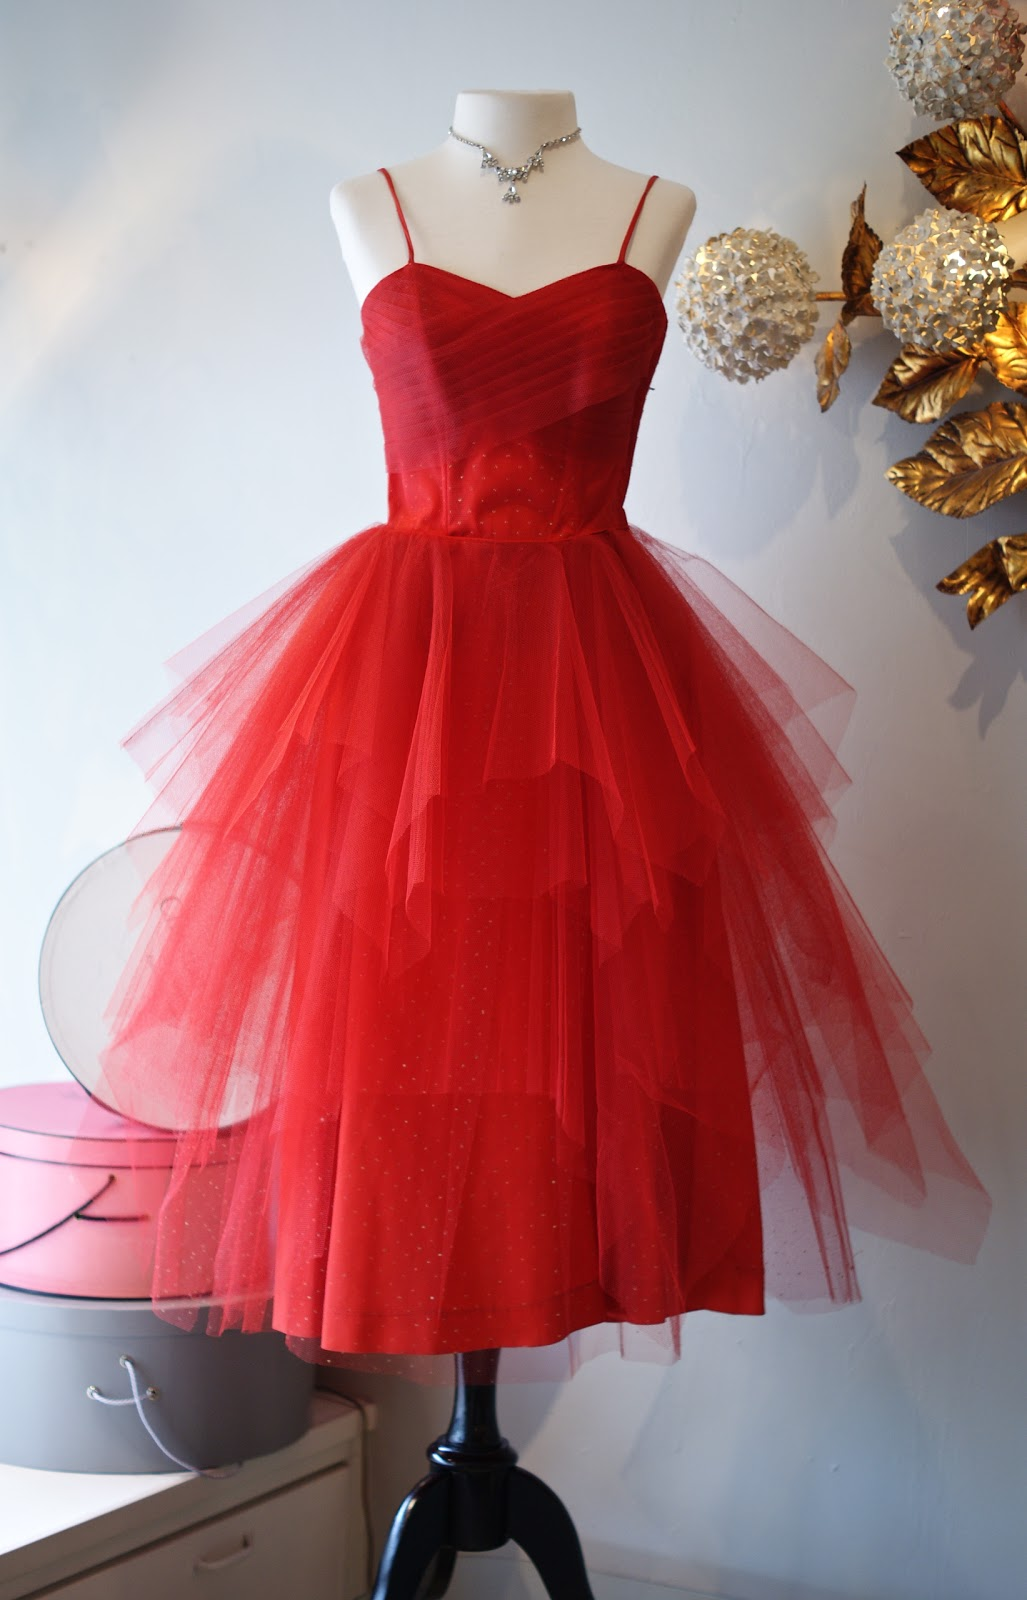 fcf9e295e04 1950 s Scarlet Emma Domb party dress. Waist 25